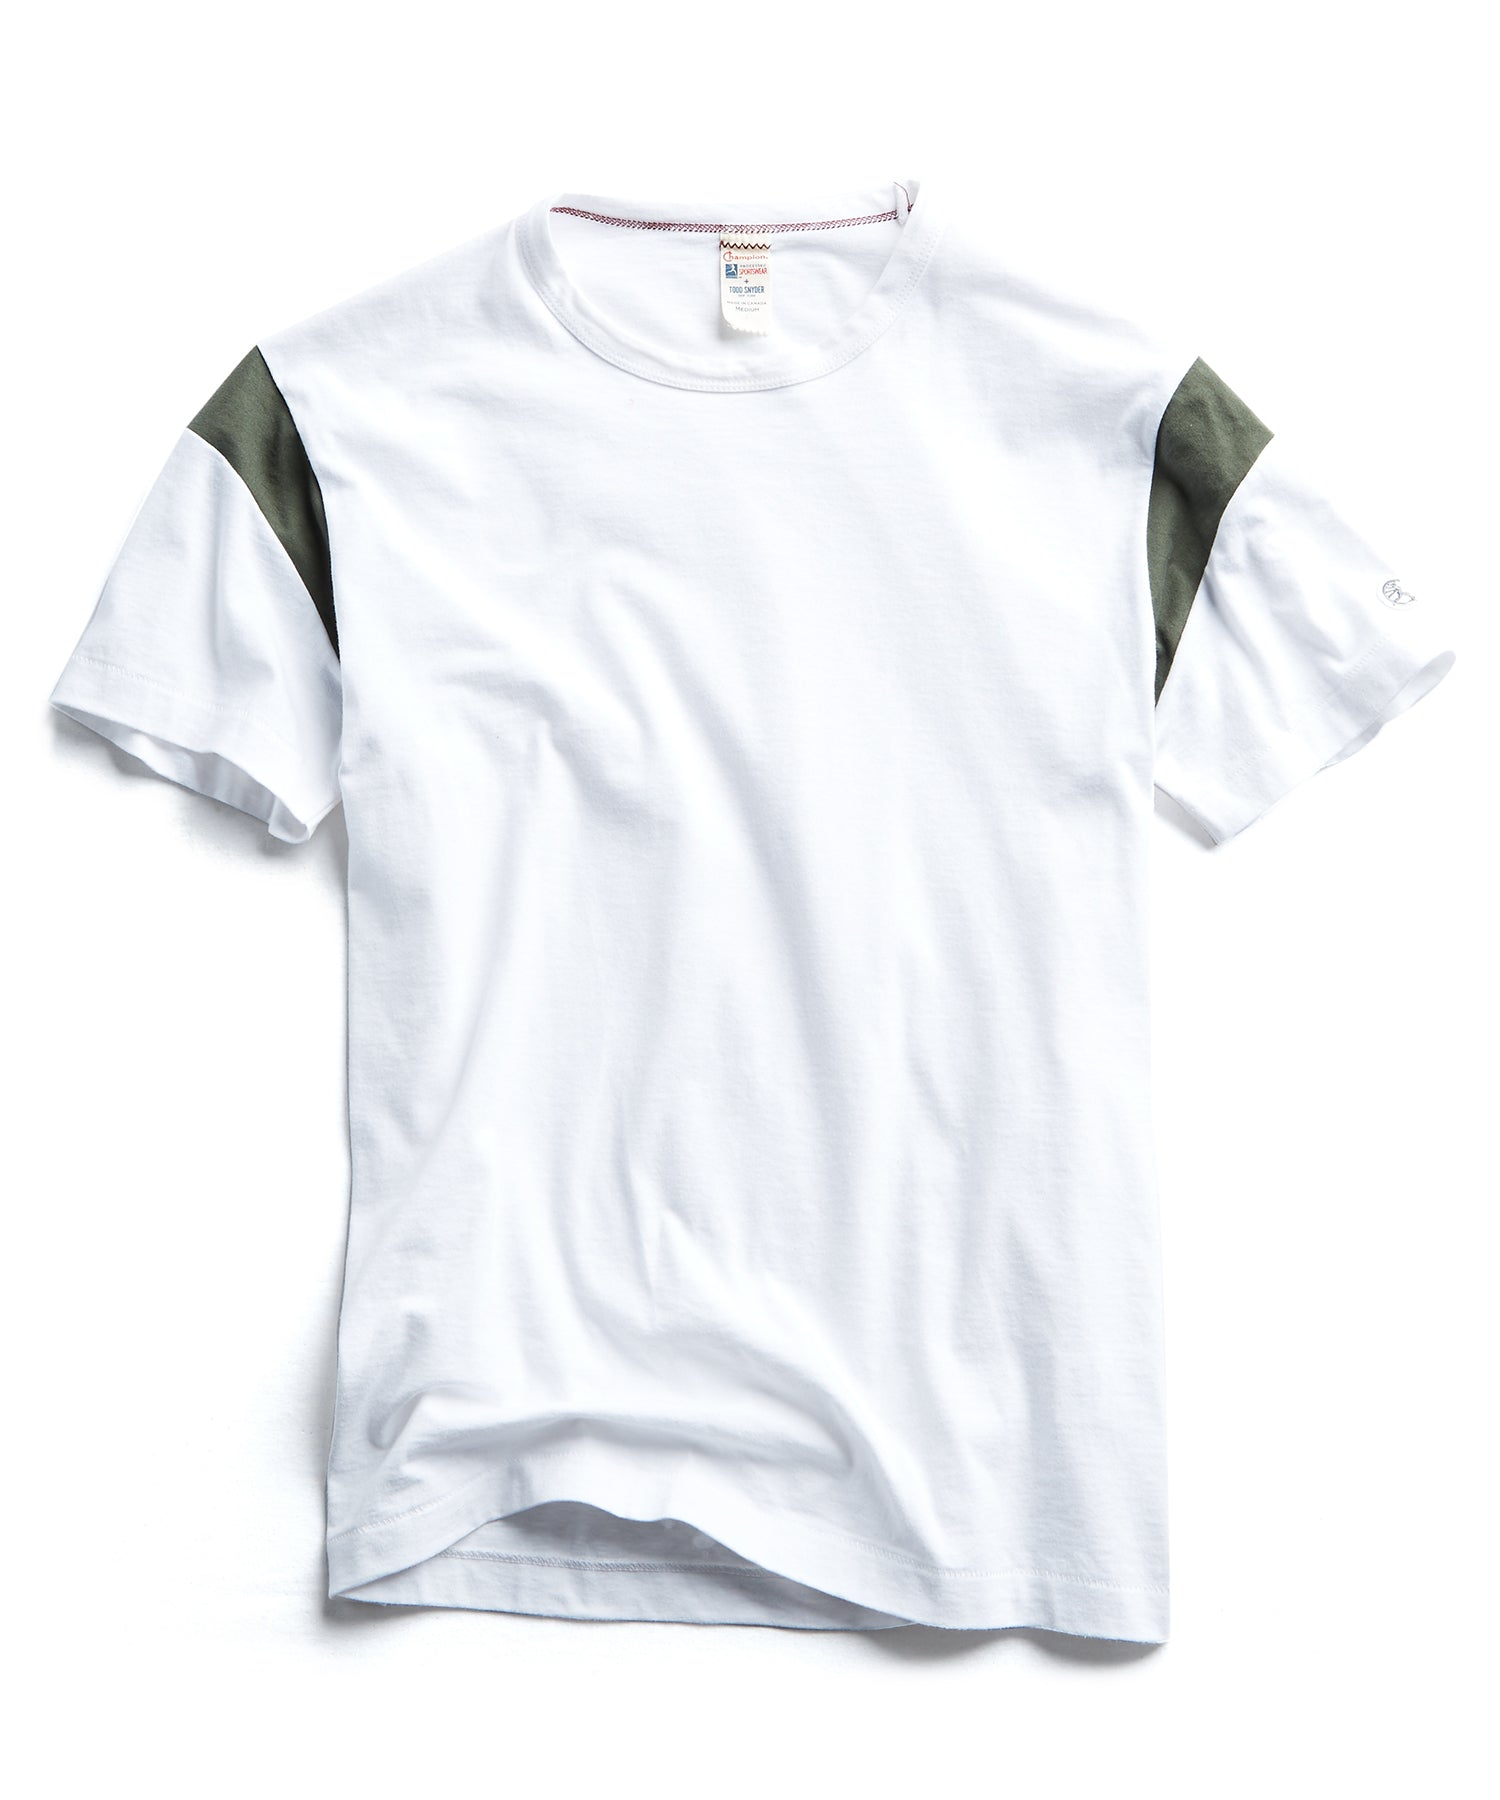 Armhole T-Shirt in Olive/White